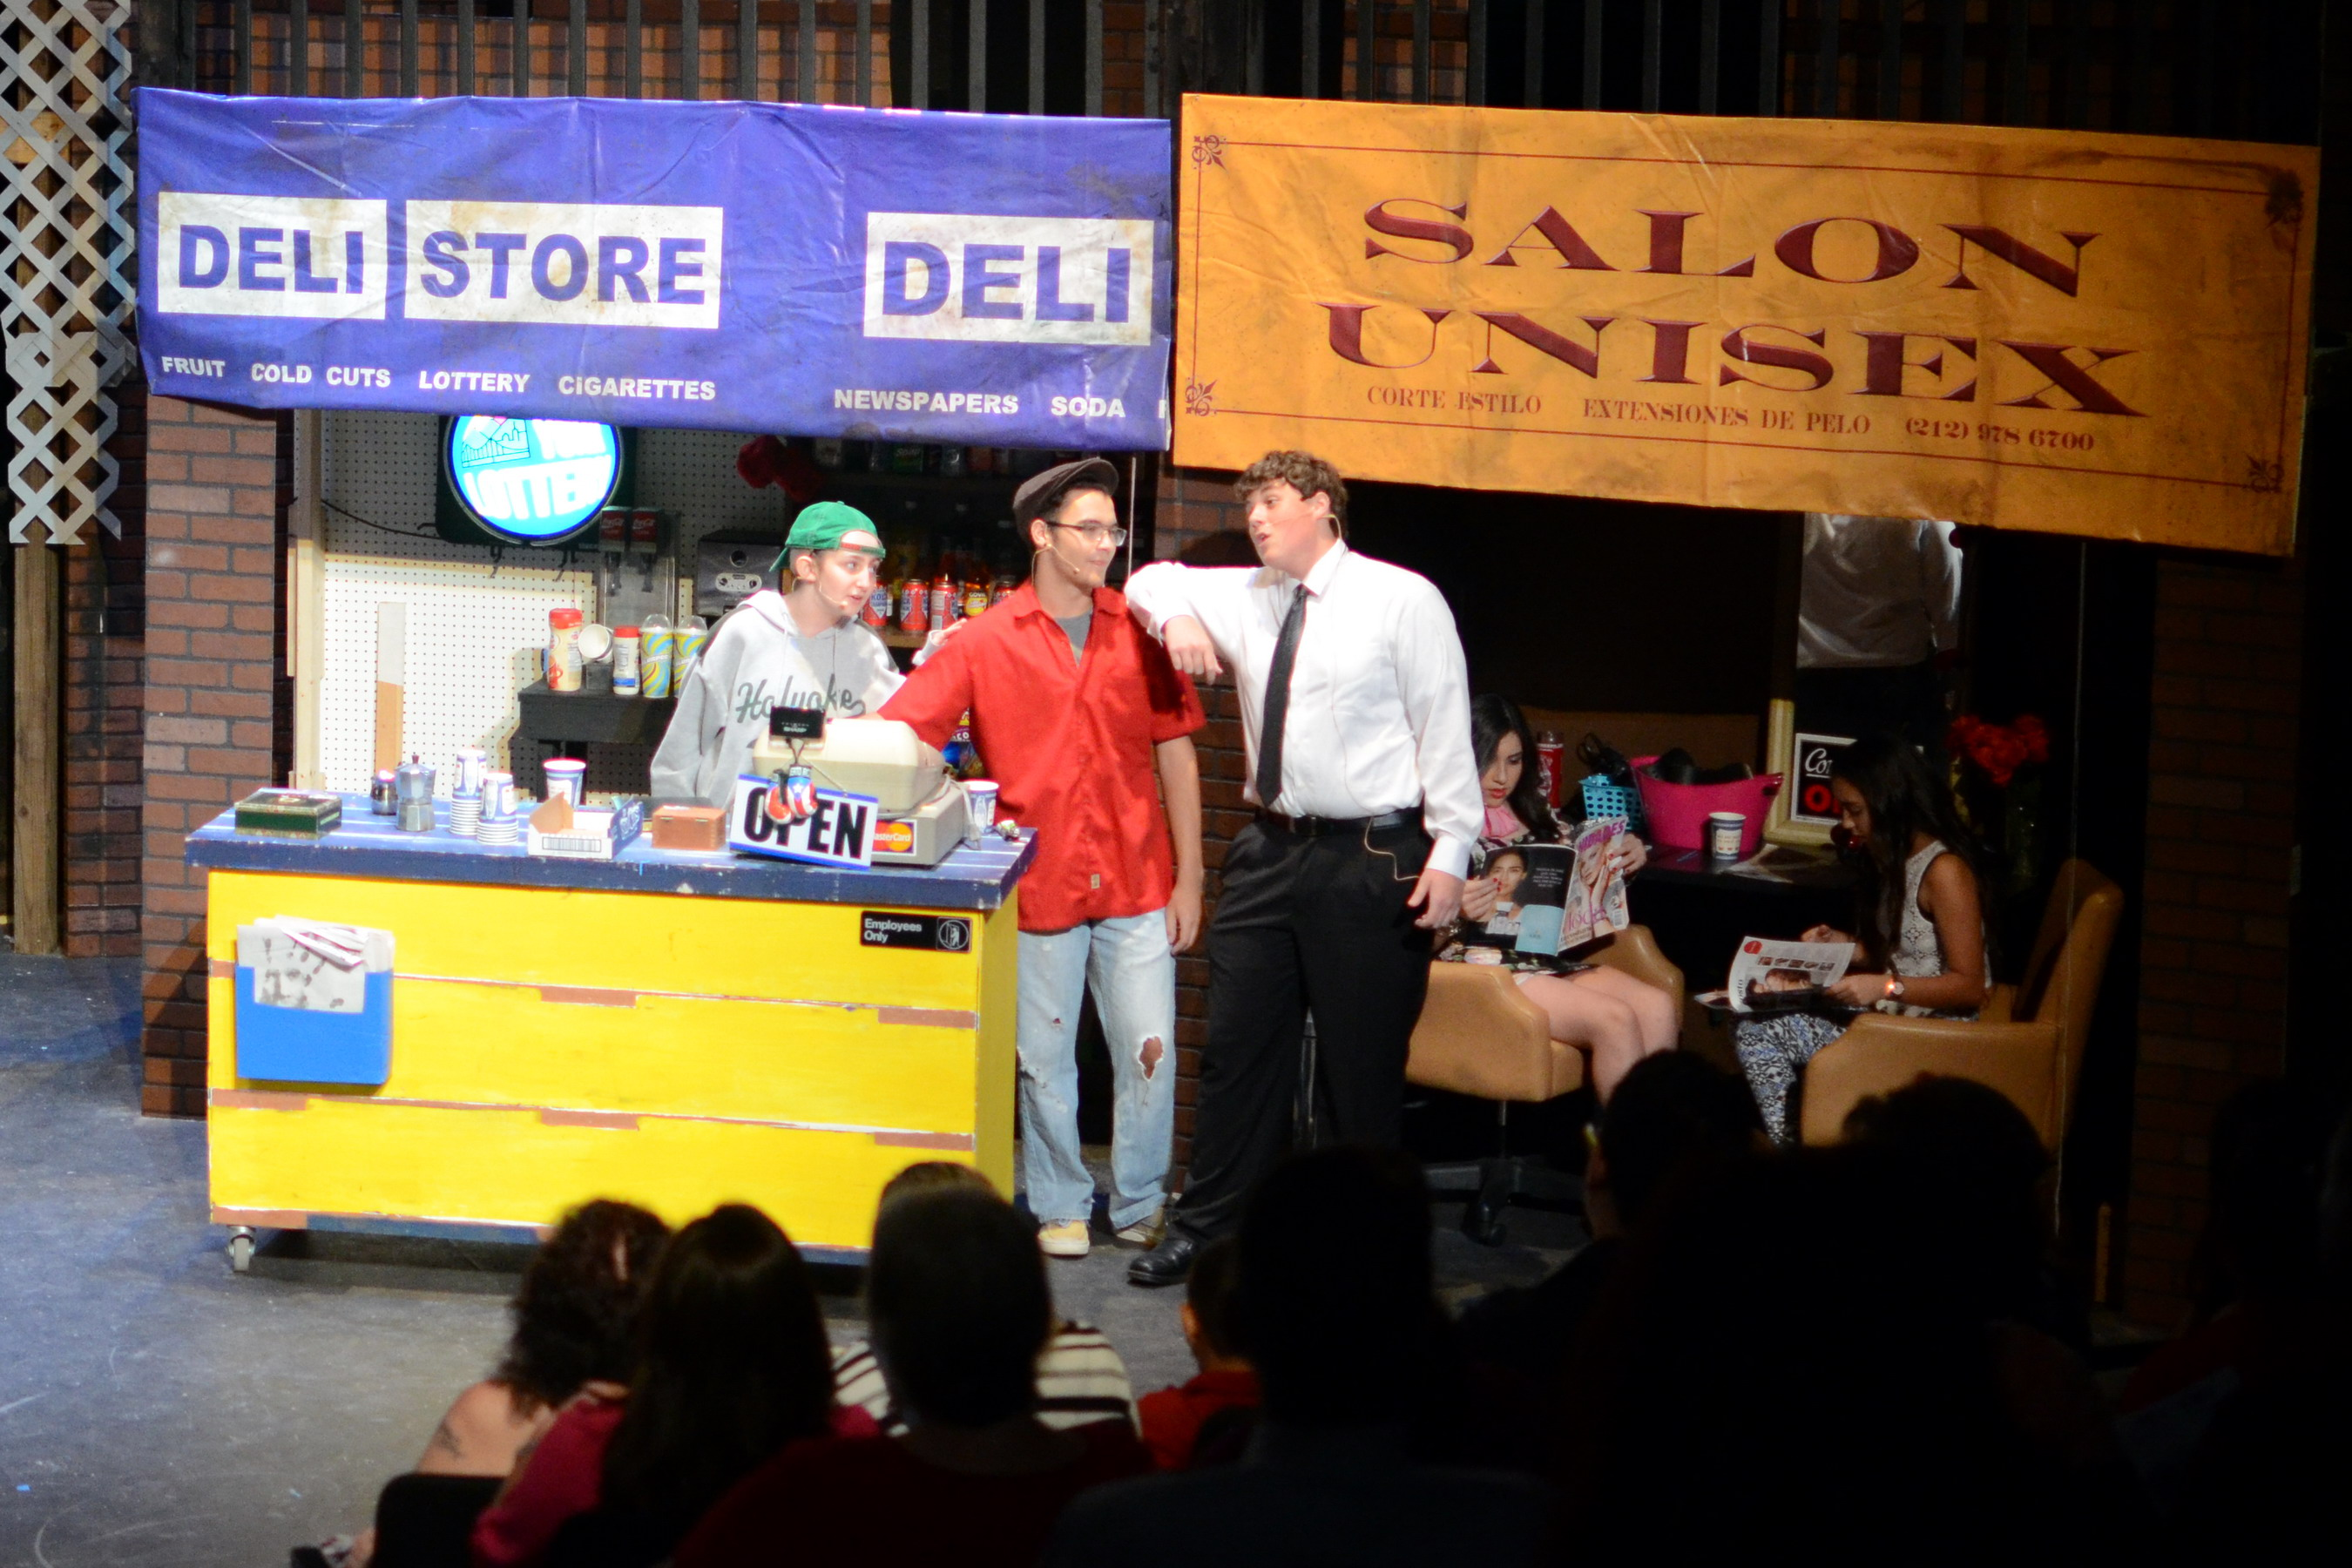 In the HEights pic 1